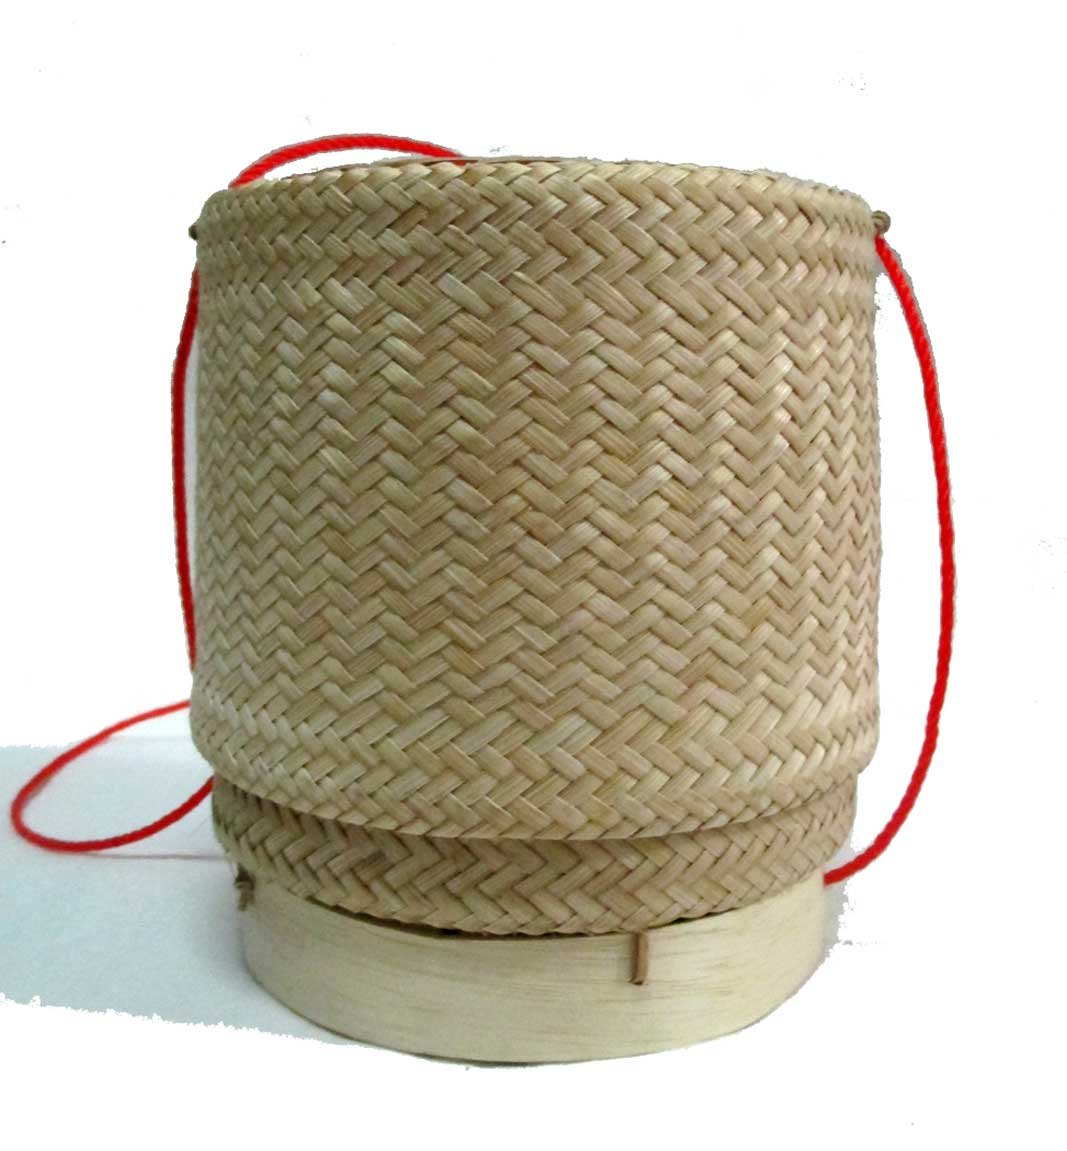 Thai Lao Handmade Sticky Rice Serving Bamboo Basket /5.5''x4.75''